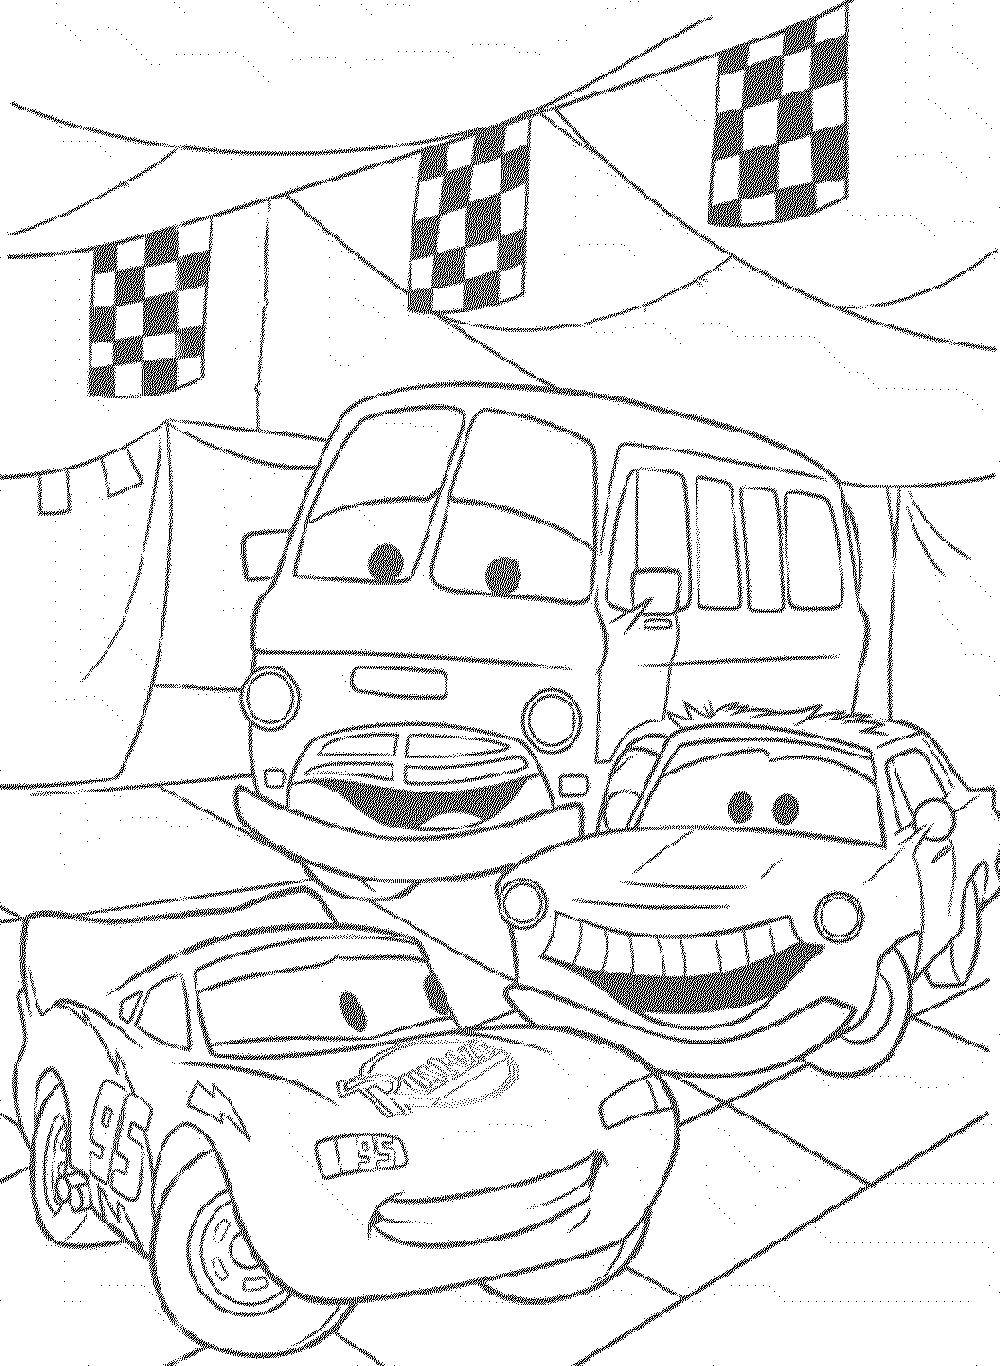 coloring pages of the movie cars | Print & Download - Kids Cars Coloring Pages